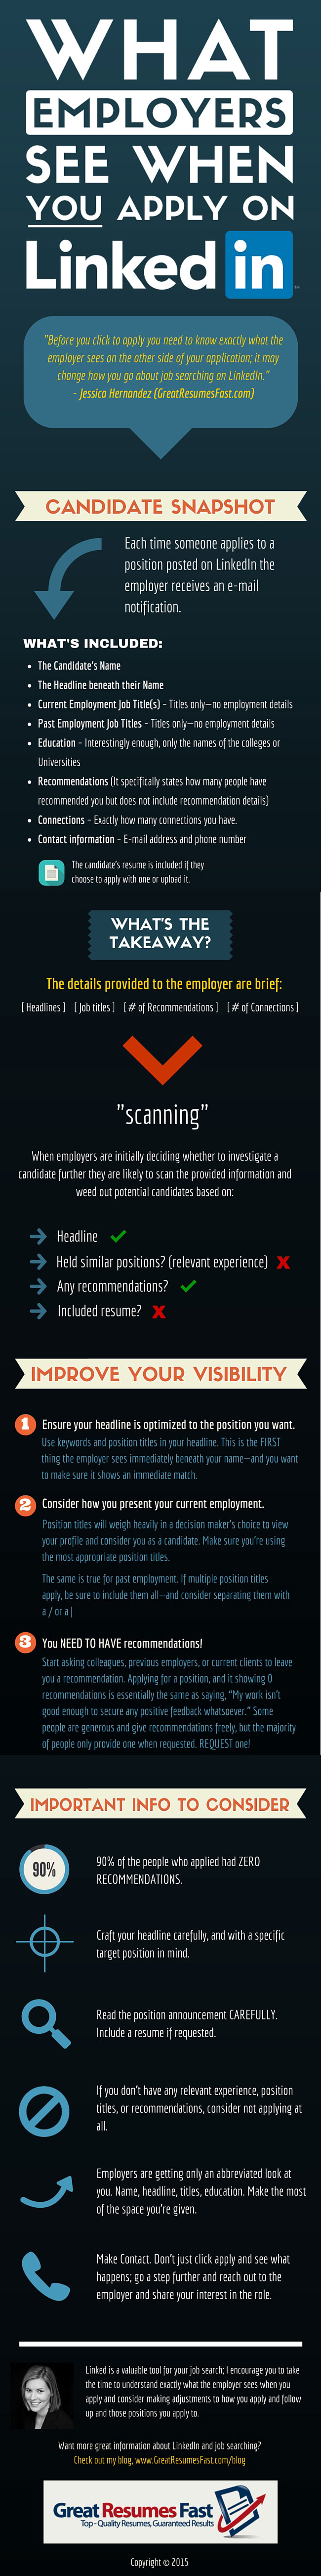 What Employers See When You Apply on LinkedIn [Infographic